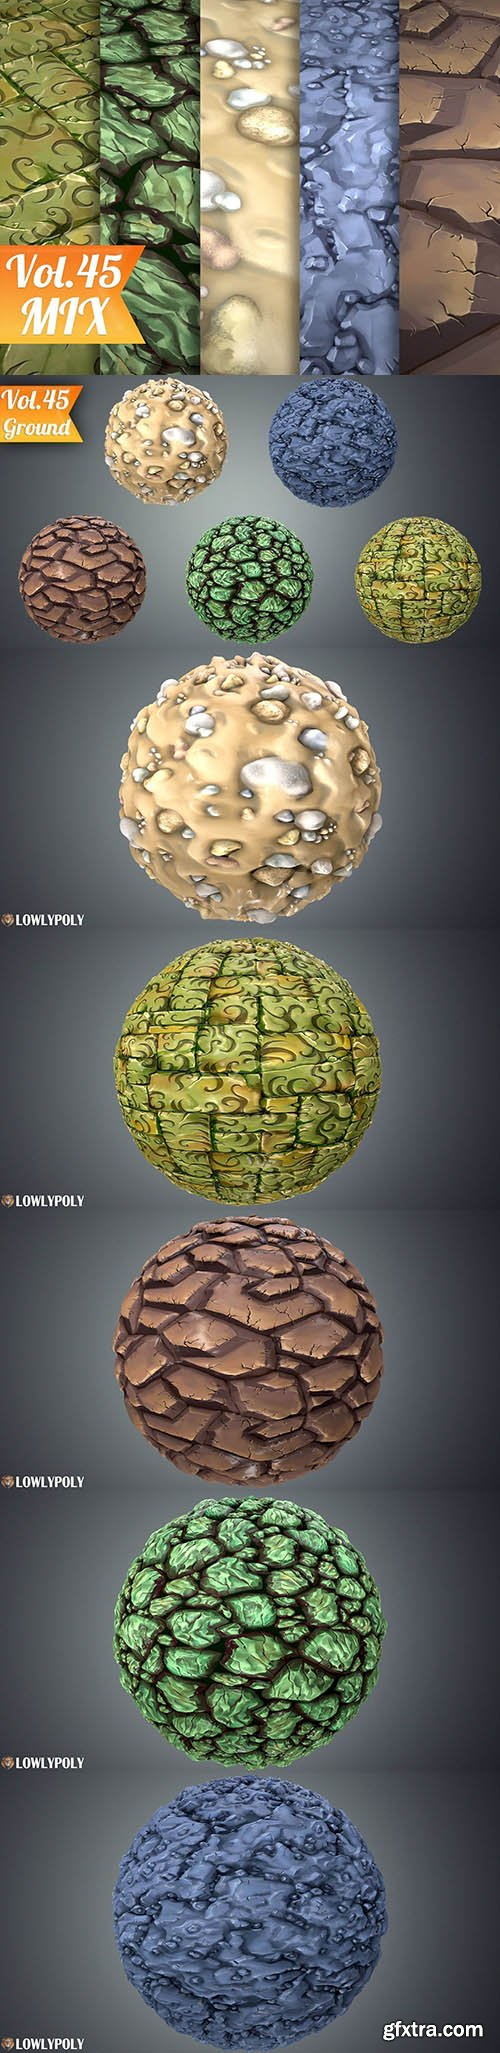 Cgtrader - Stylized Ground Vol 45 - Hand Painted Texture Pack Texture